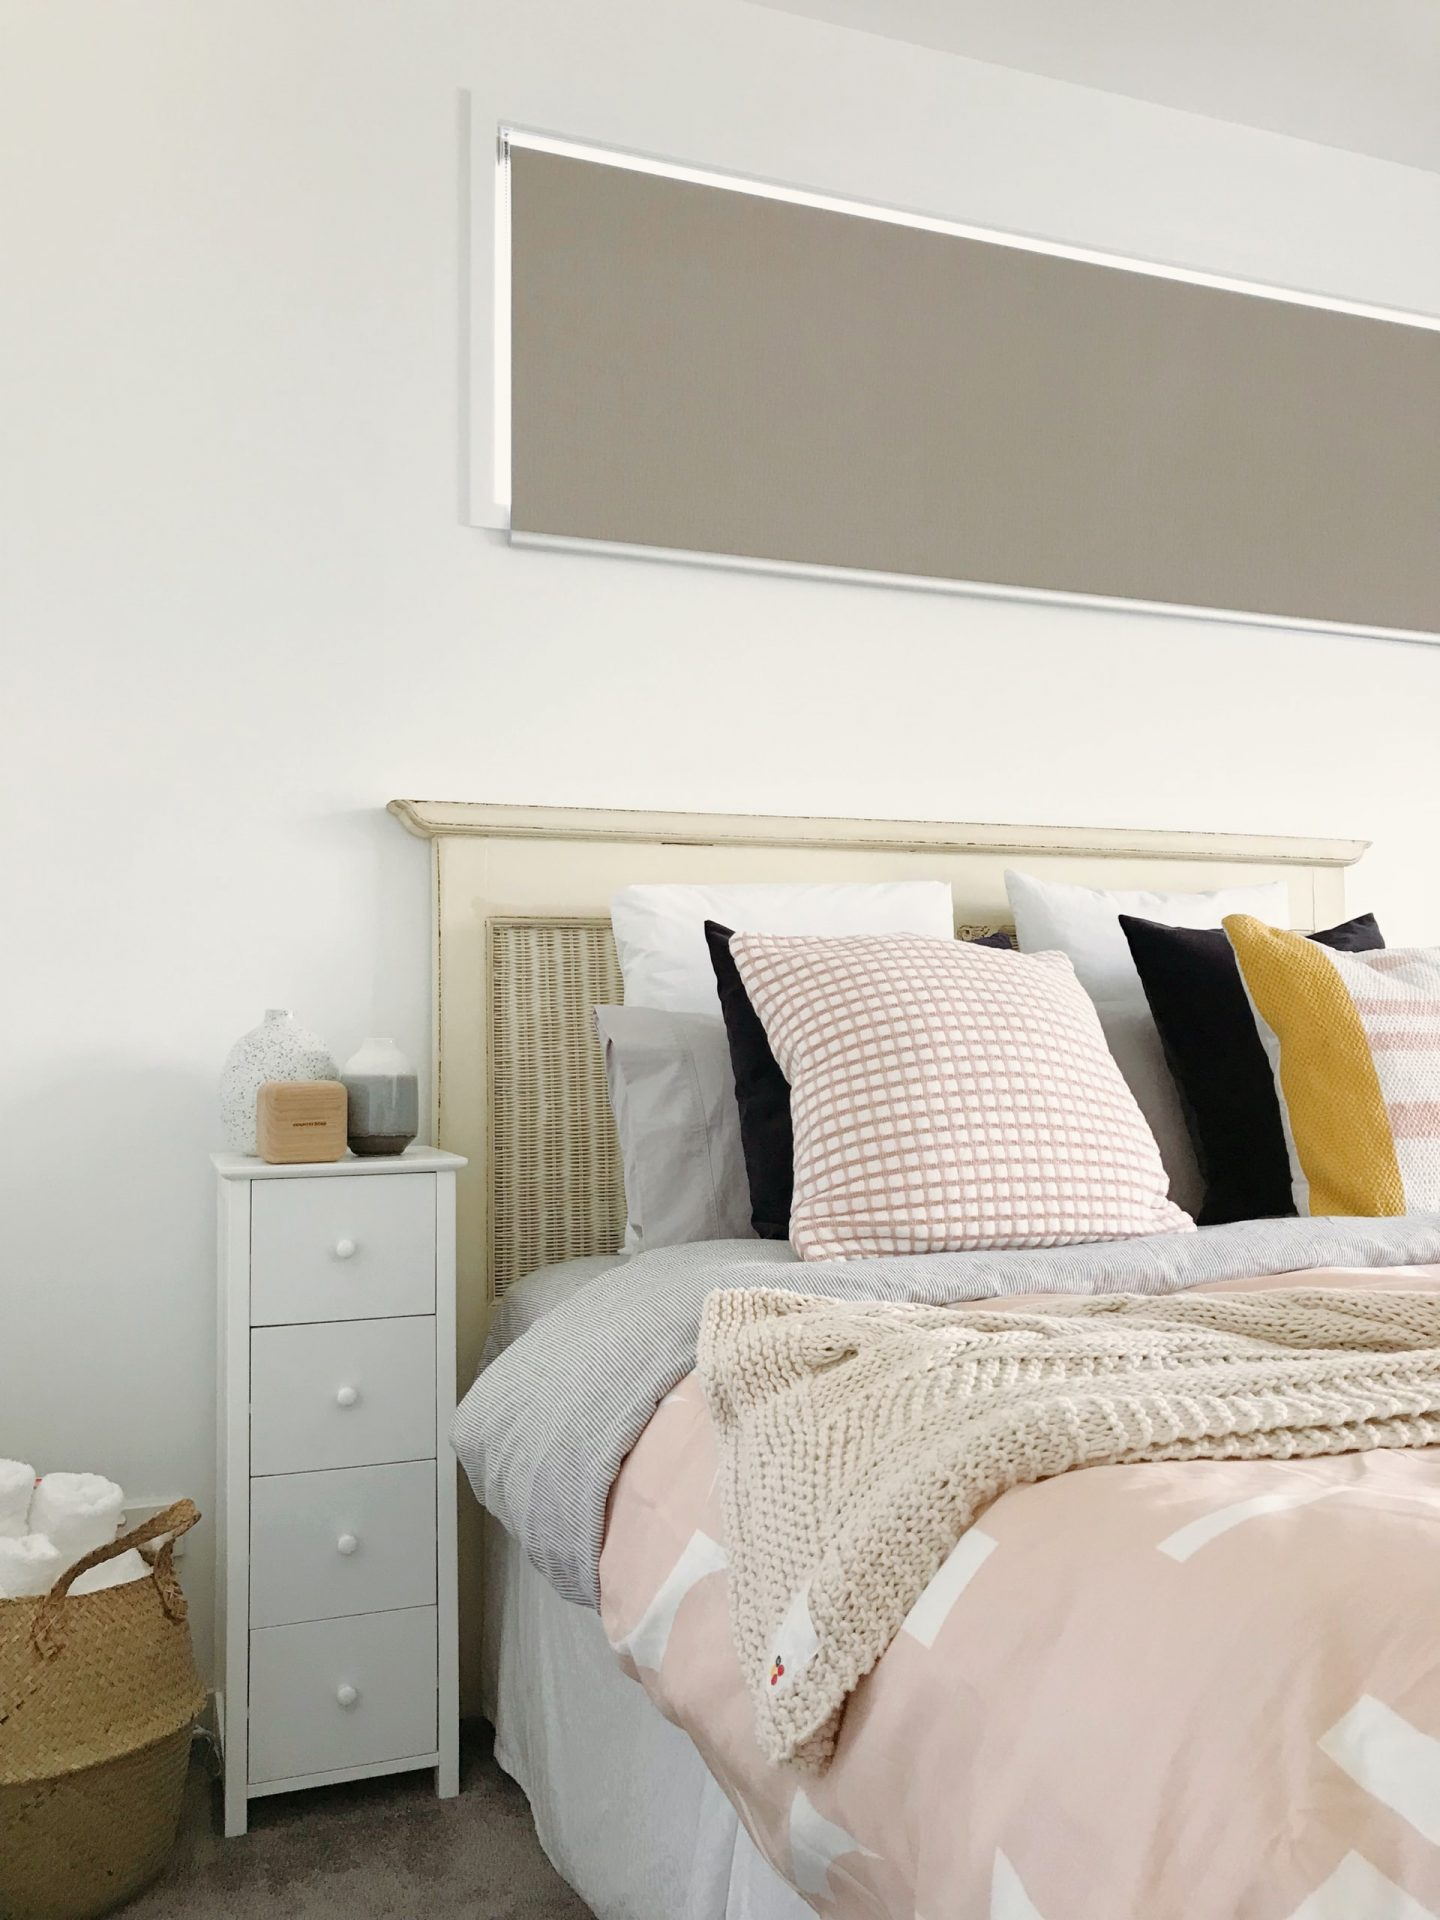 comfortable bed with peach sheets, pillow and throw next to a tall bedside table in a white room